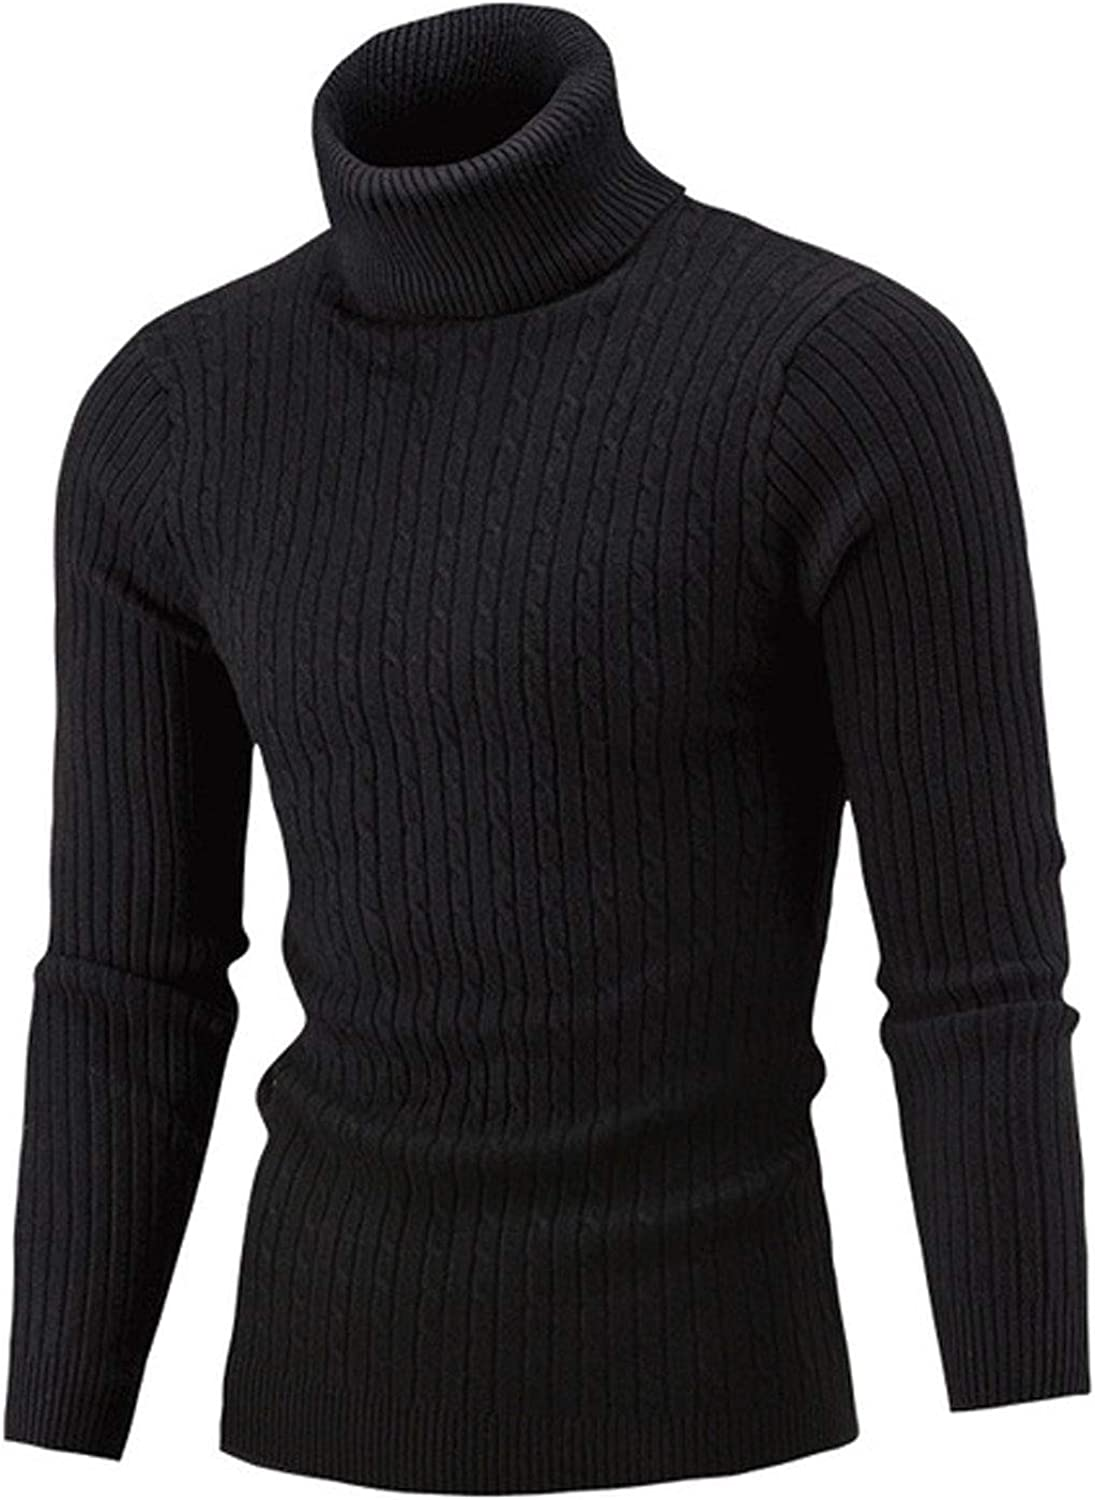 Men Autumn Winter Warm Sweater Solid Color Long Sleeve High Collar Knitted Pullover Turtelneck